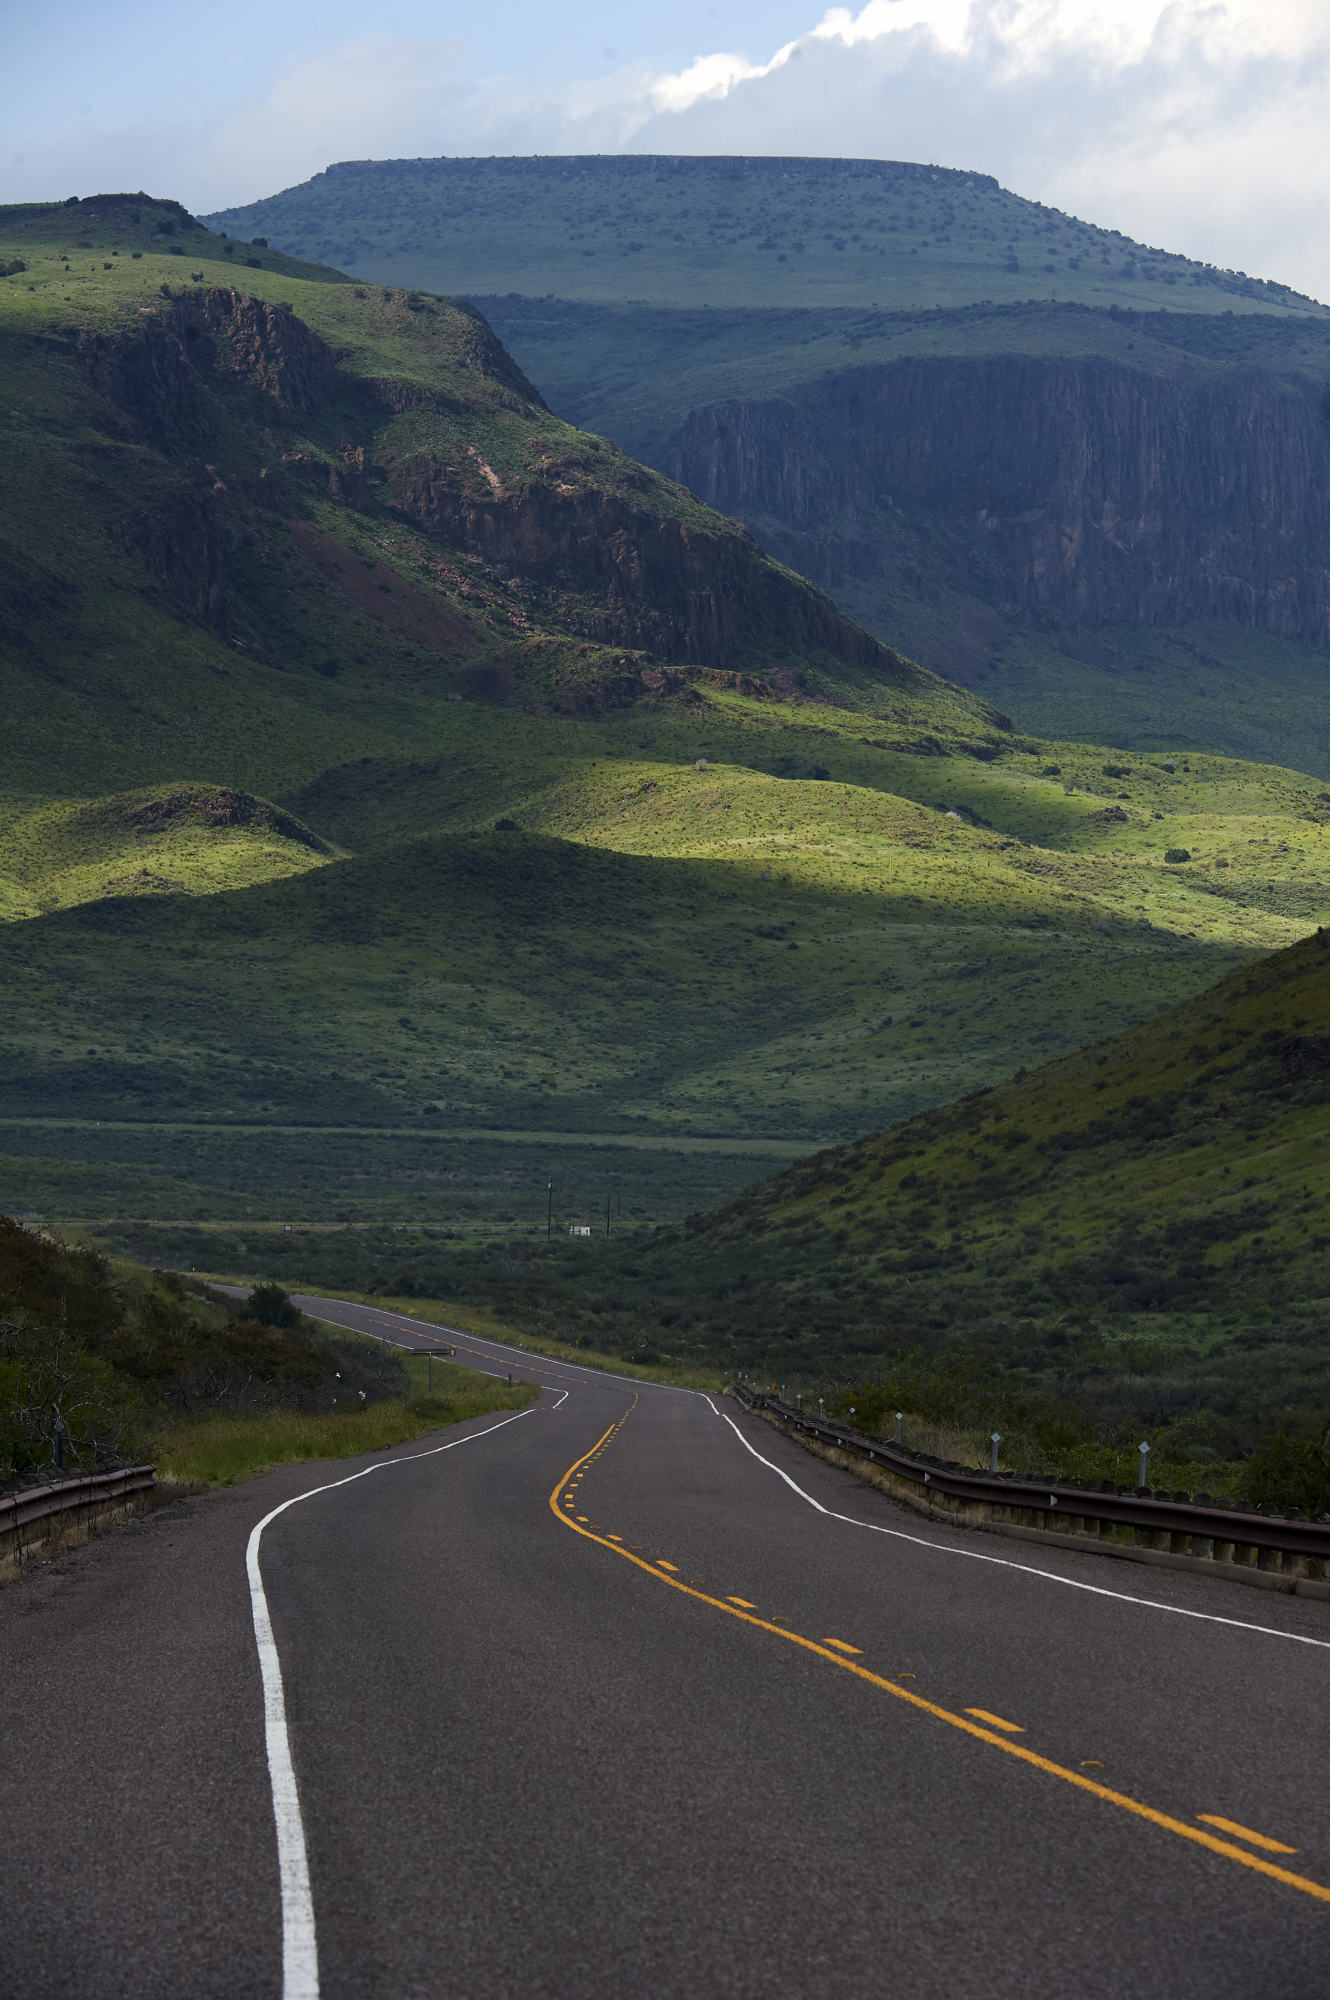 The road into the Davis Mountains looking Backwards